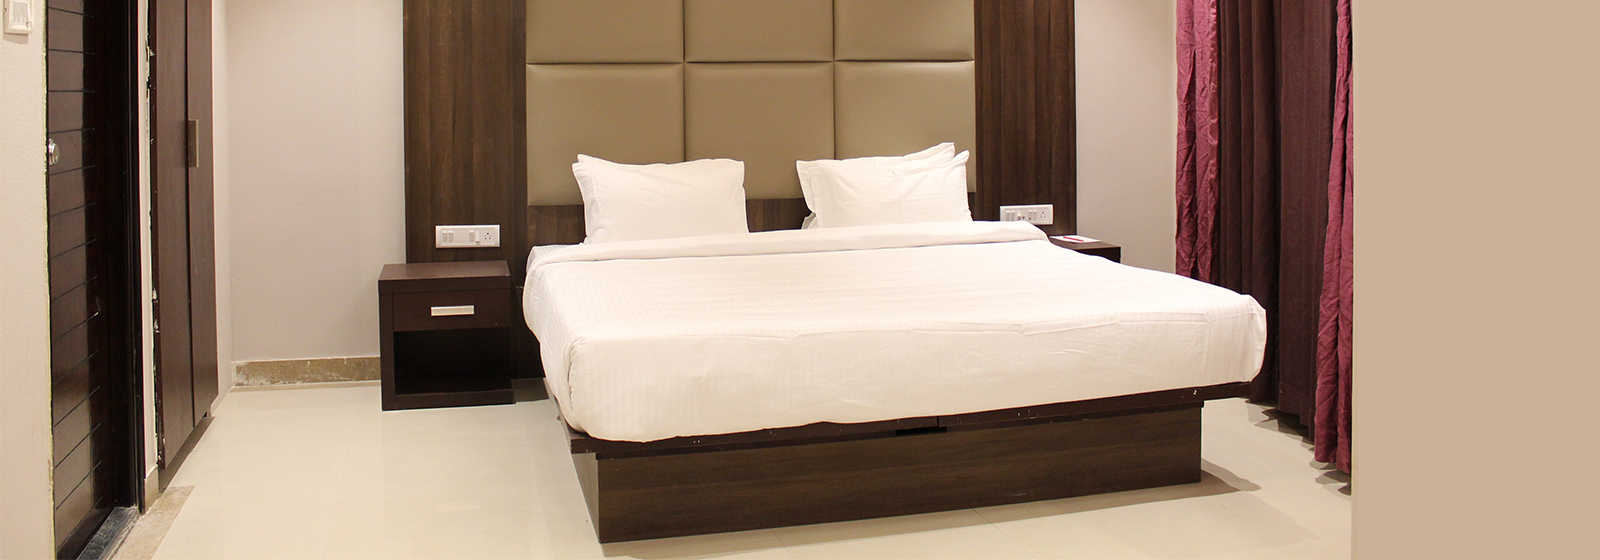 Super Deluxe Room with a king bed at The Byke Signature, a business hotel in Whitefield, Bangalore.